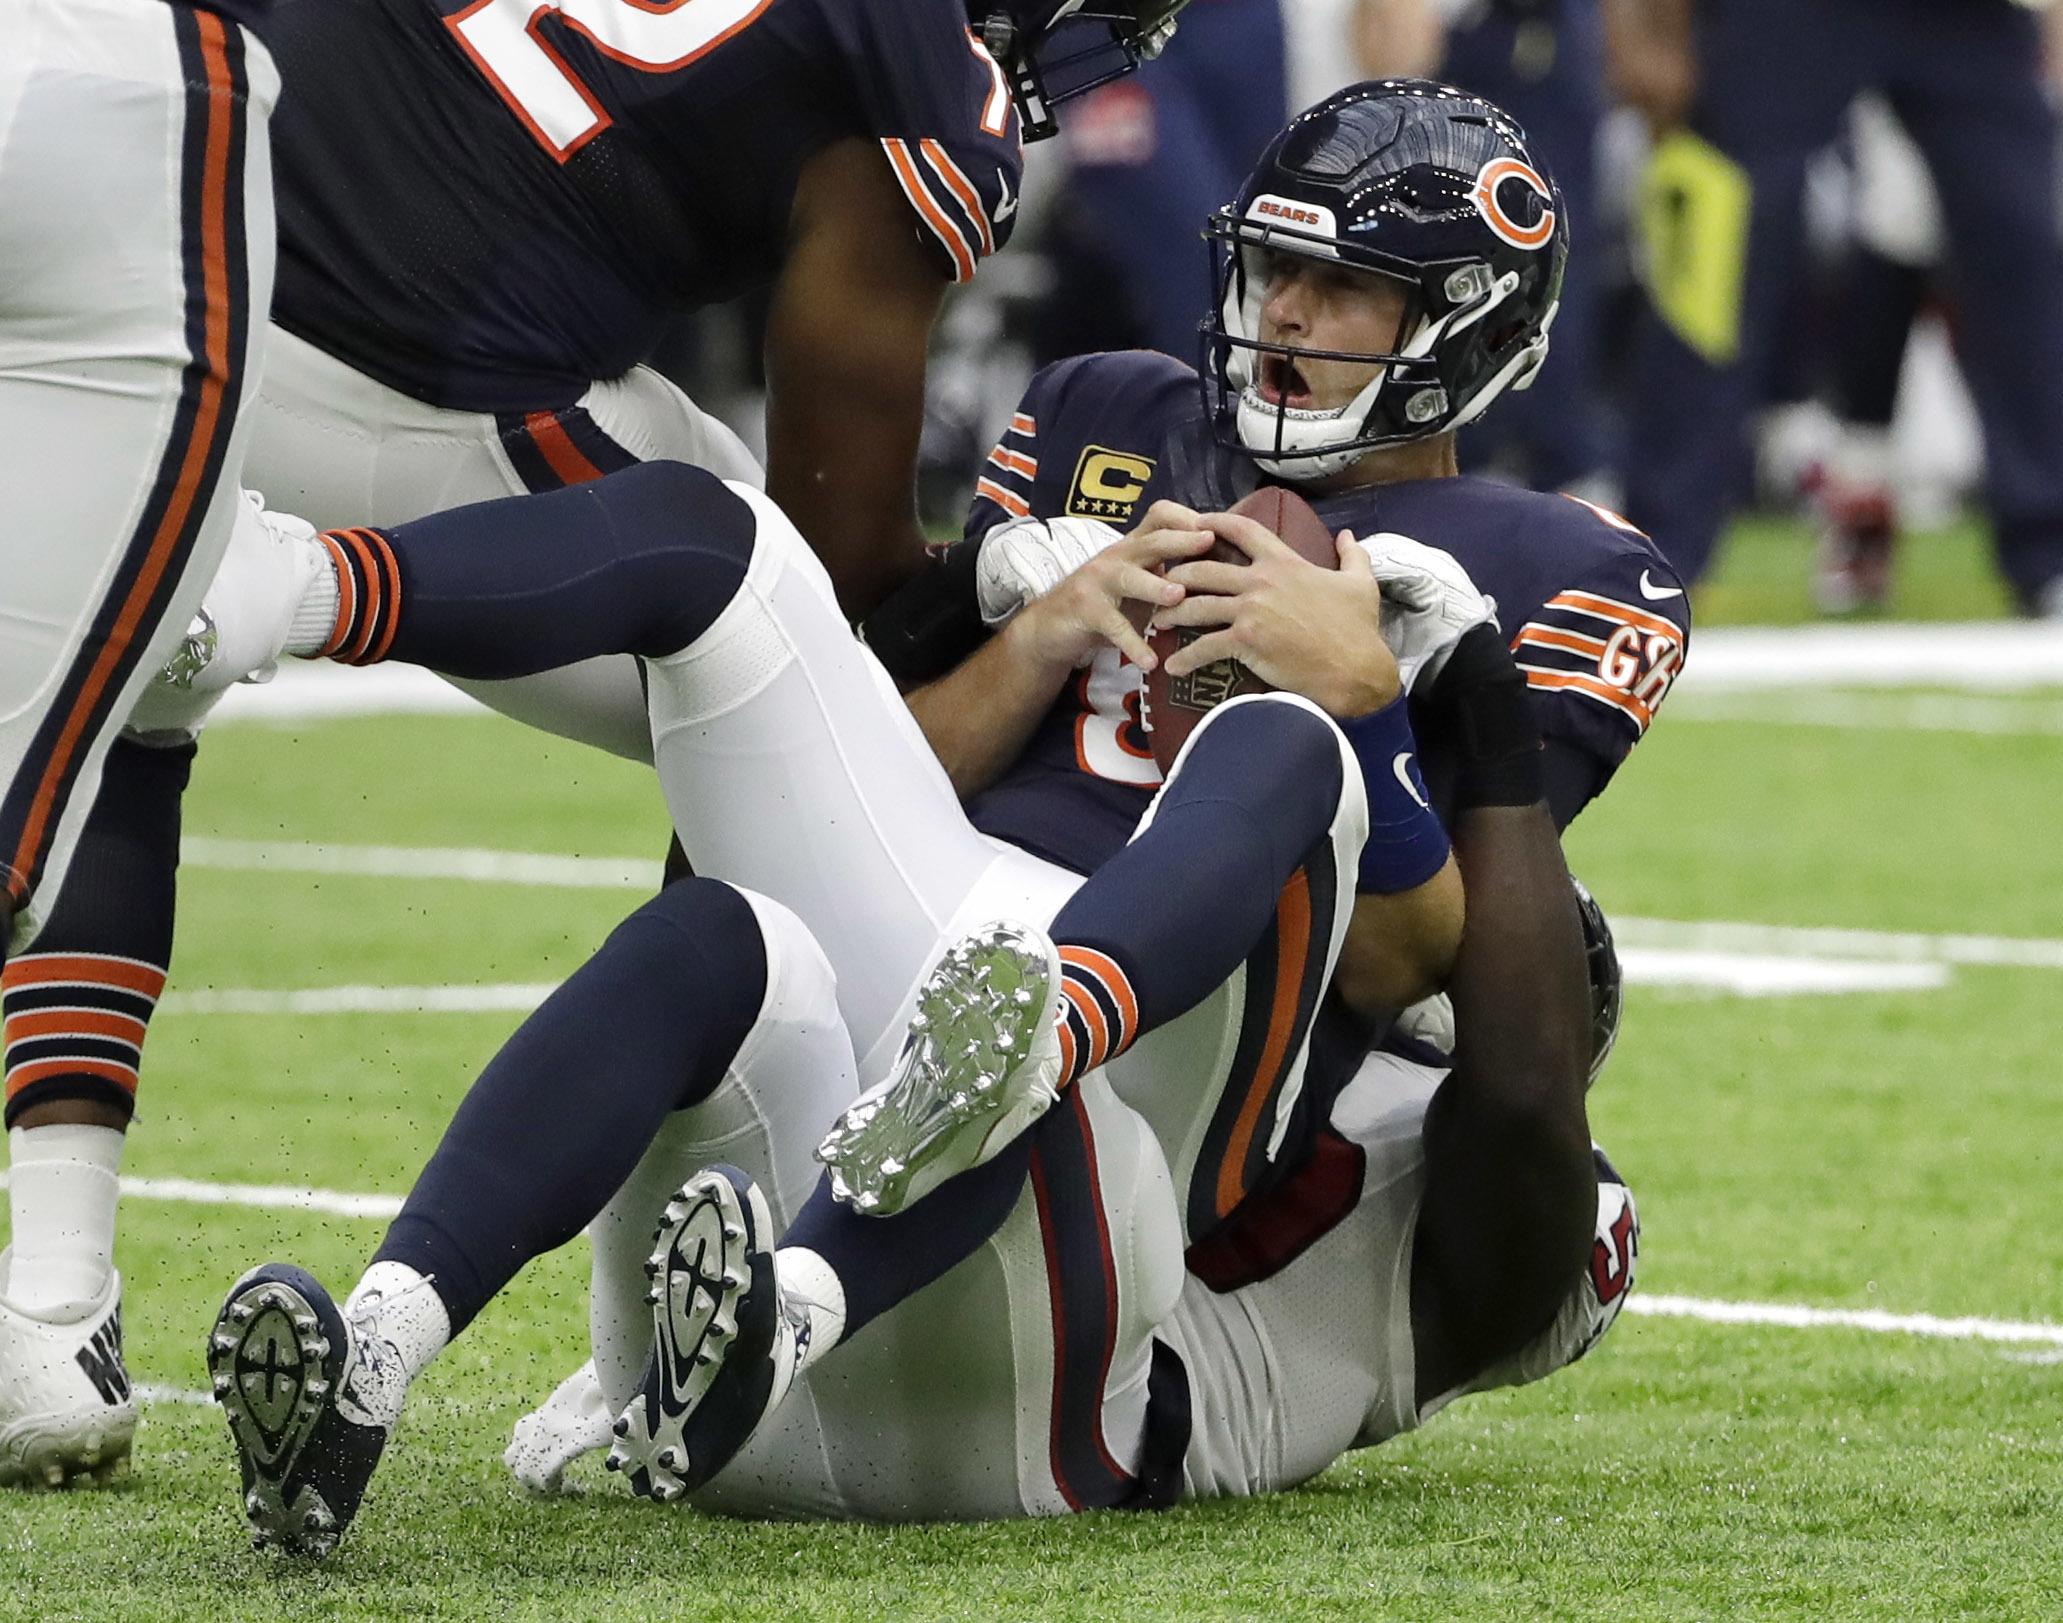 Chicago Bears quarterback Jay Cutler (6) is sacked by Houston Texans outside linebacker Whitney Mercilus, bottom, during the first half of an NFL football game, Sunday, Sept. 11, 2016, in Houston. (AP Photo/David J. Phillip)